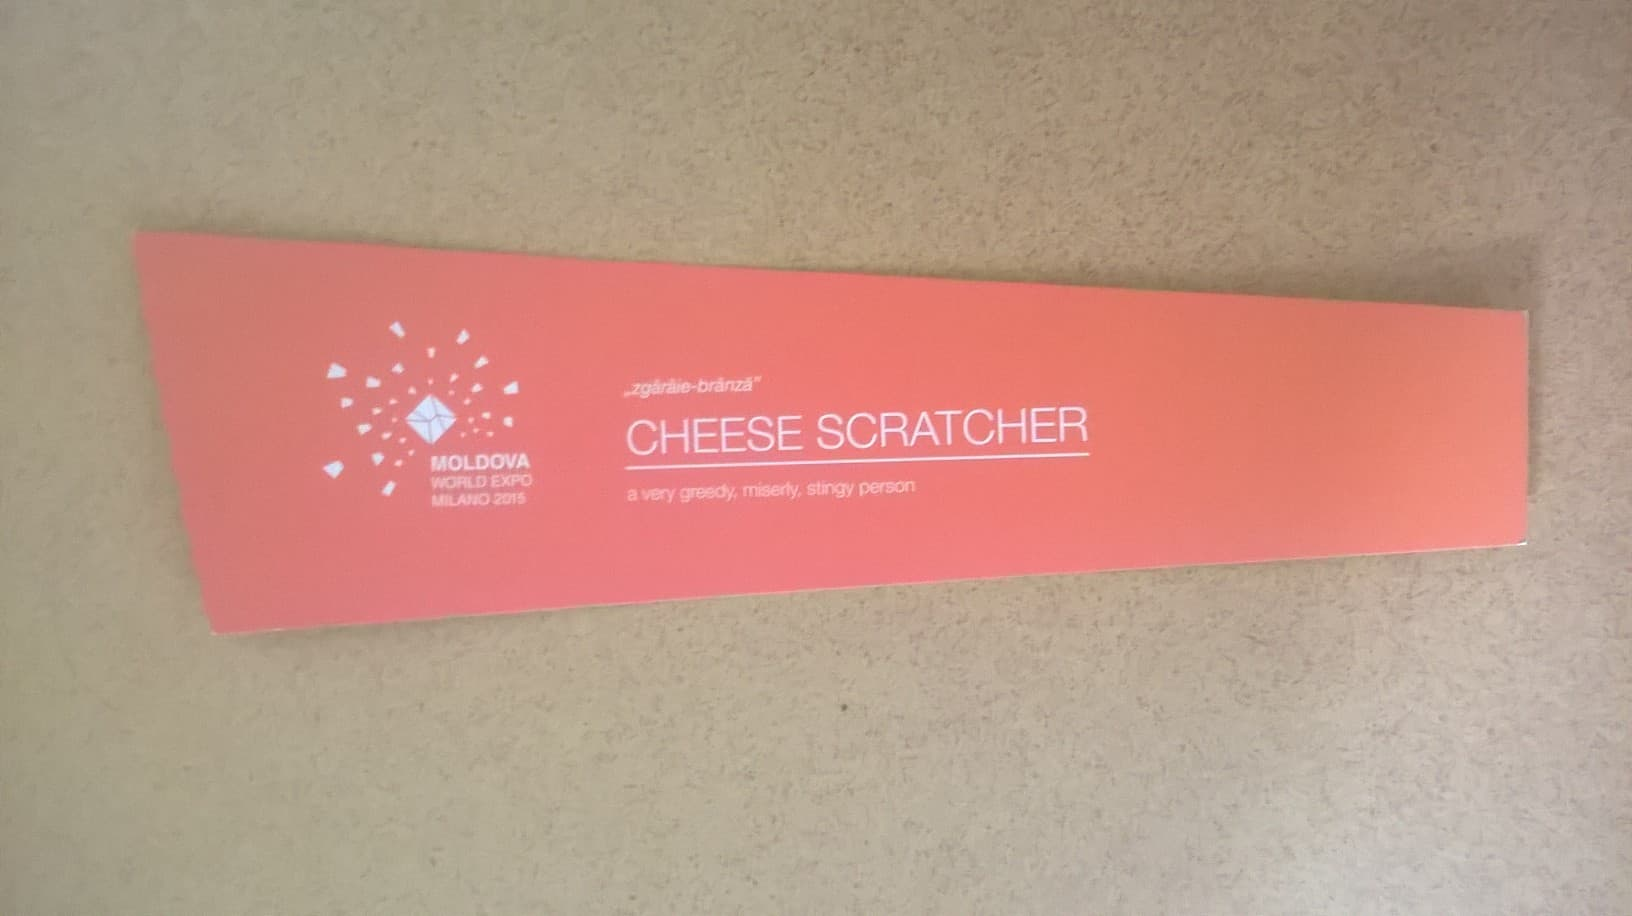 Cardboard cheese scratcher